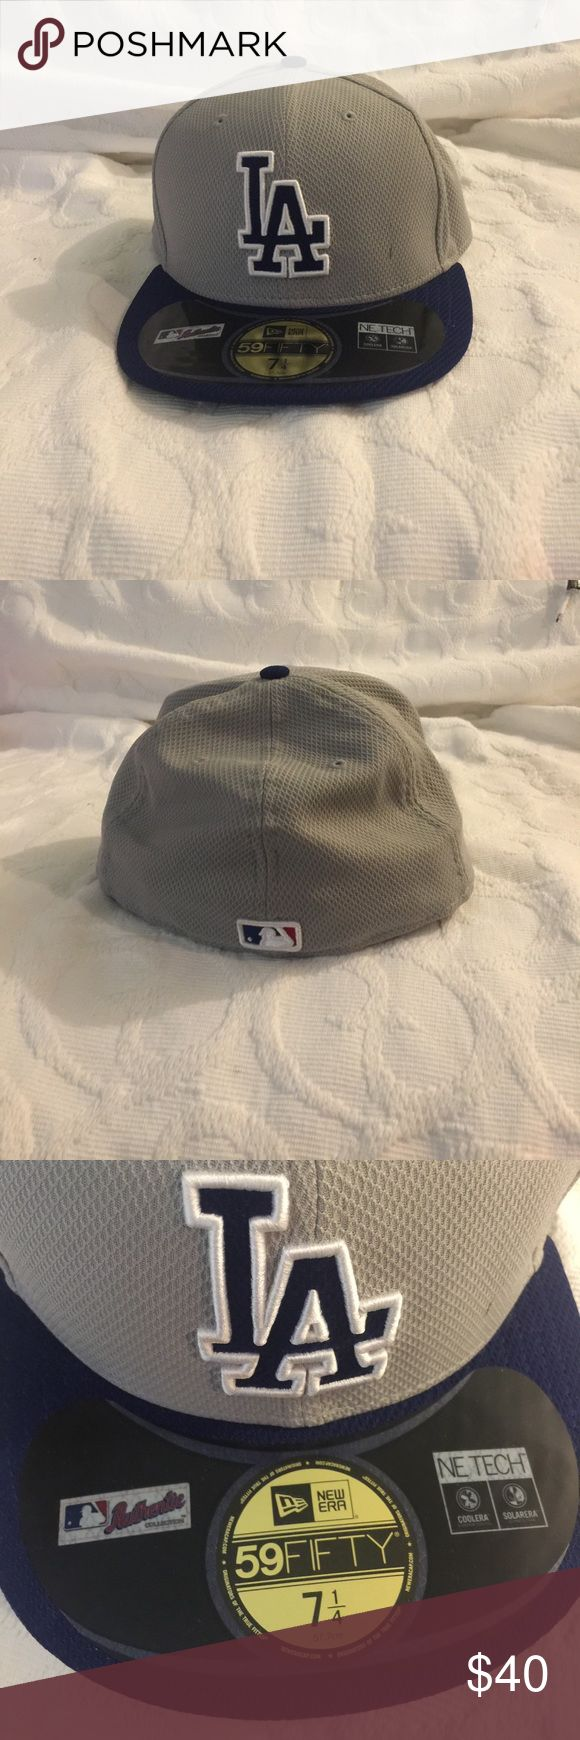 NWOT LA Dodgers Baseball Hat • Never worn • Size: 7 1/4, 57.7cm • Purchased at Lids store at the Westfield Garden State Plaza in Paramus, New Jersey New Era Accessories Hats